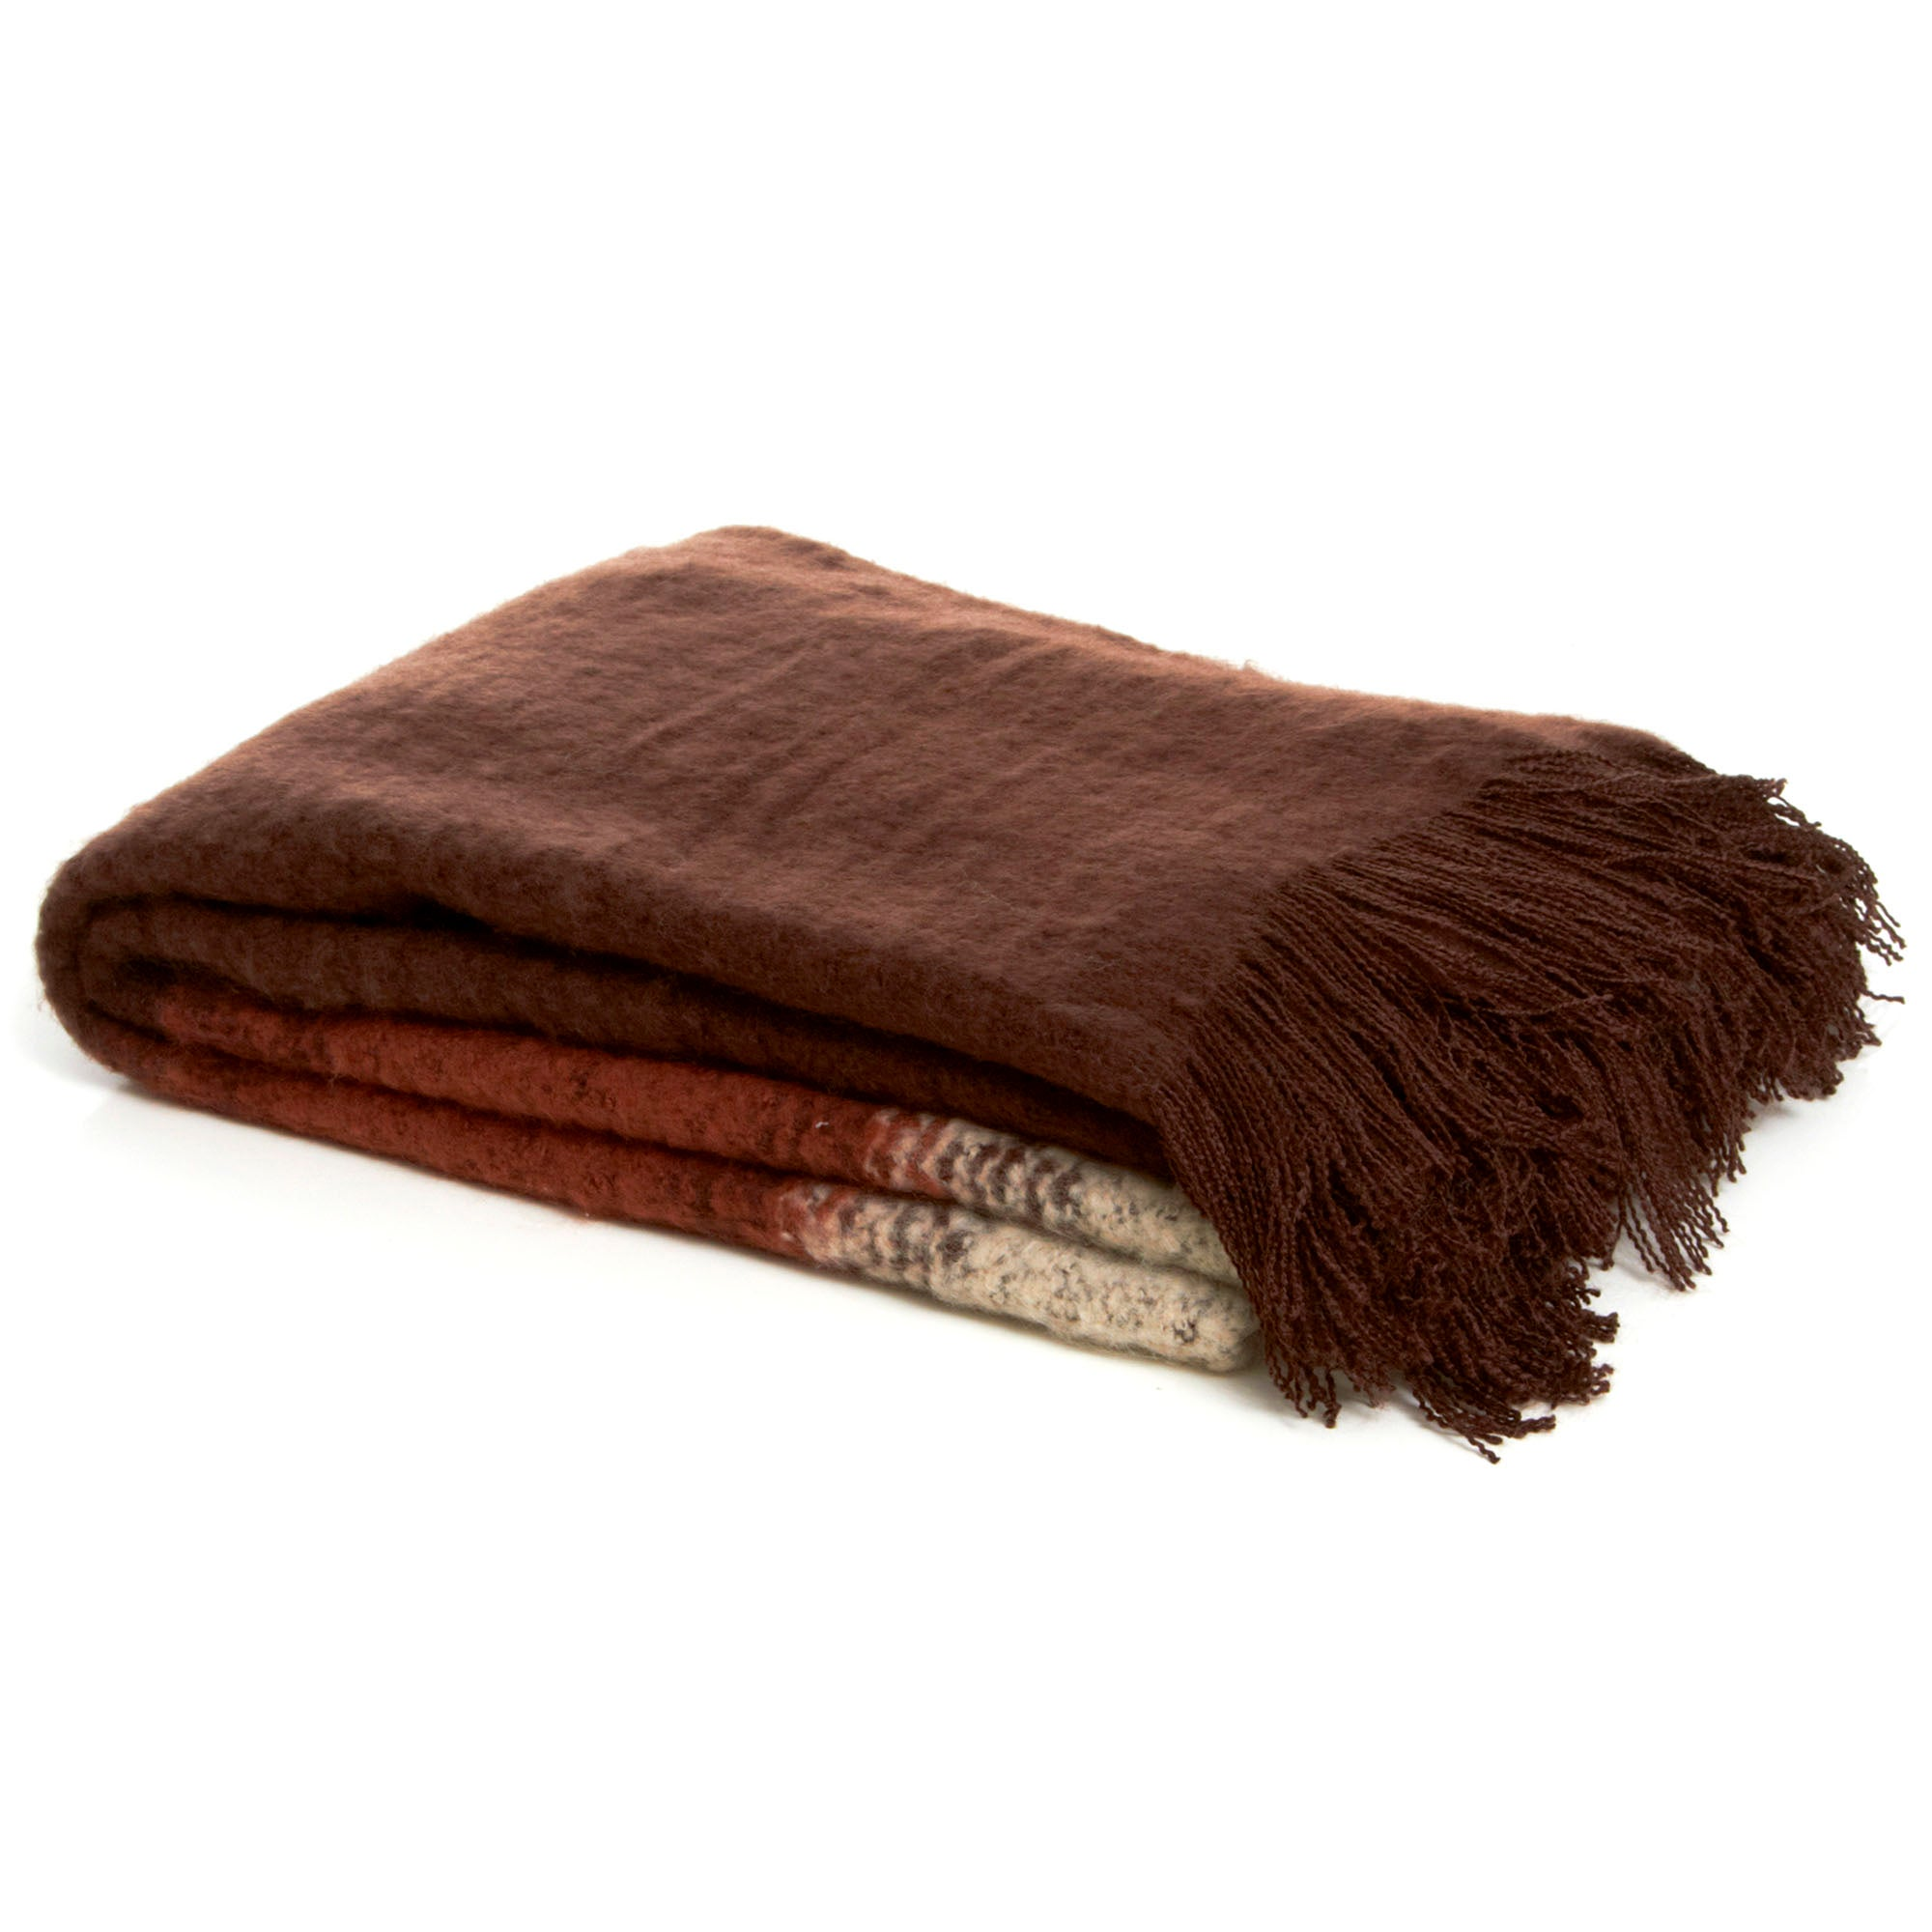 Brown Ombre Throw